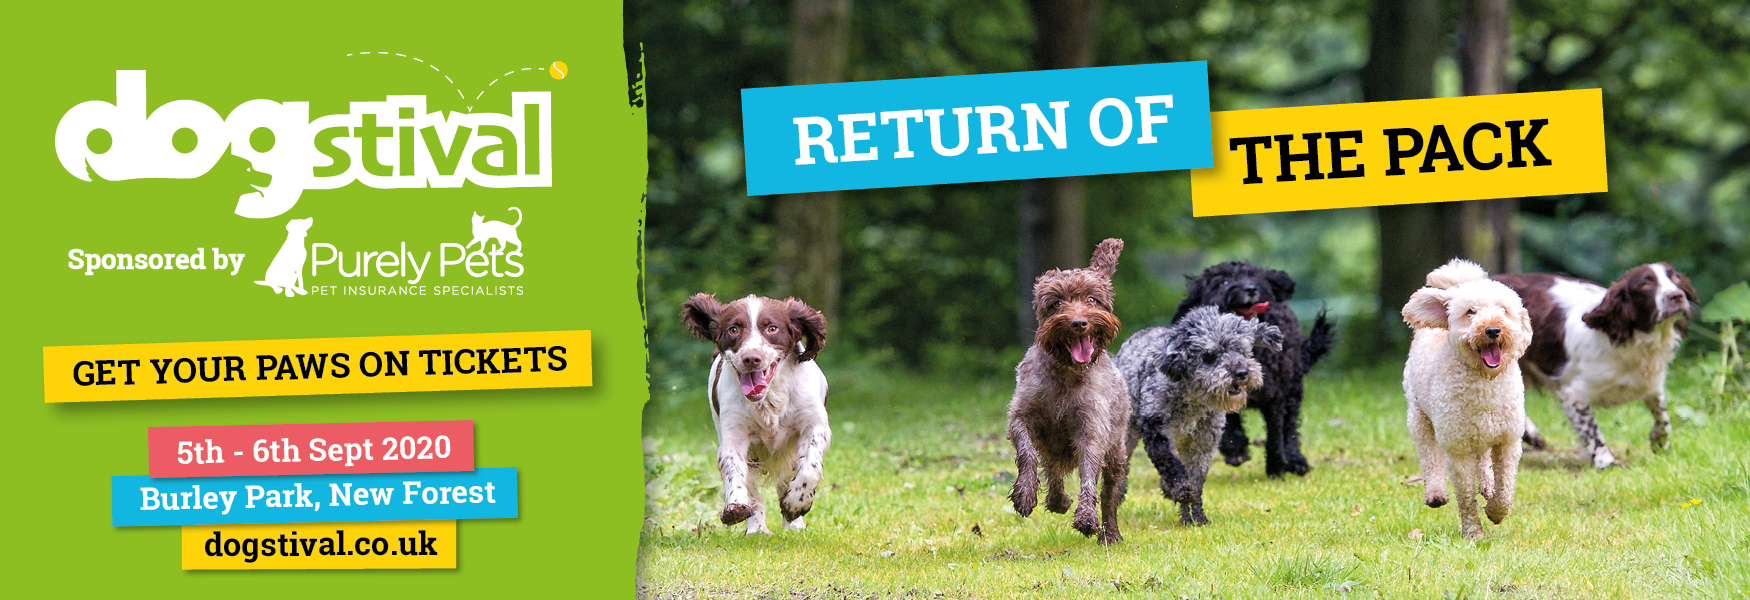 RETURN OF THE PACK - DOGSTIVAL 2020, THE ONLY GUEST LIST YOUR DOG WANTS TO BE ON!